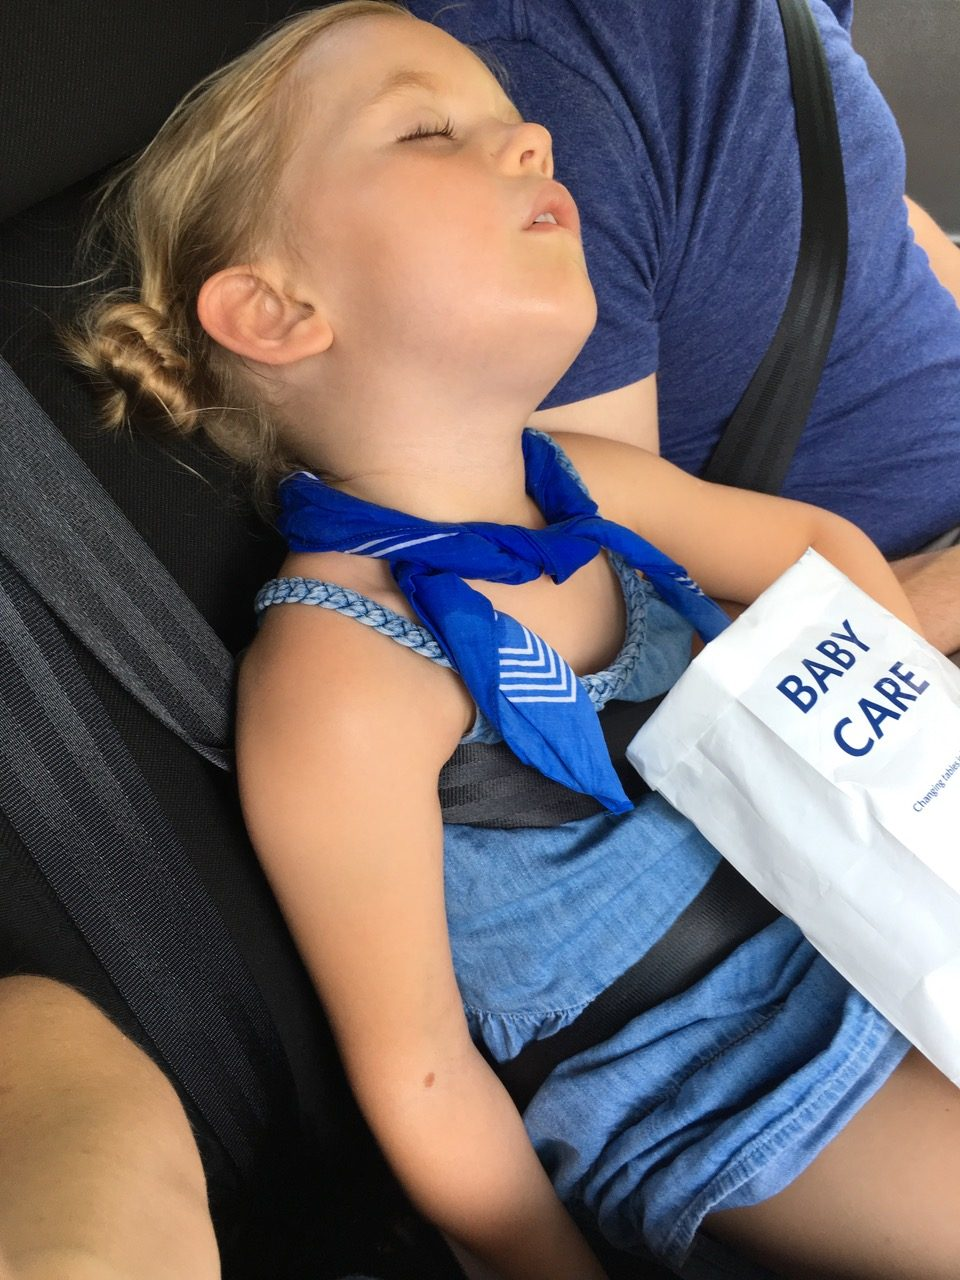 coping with car and motion sickness for children, tips to help